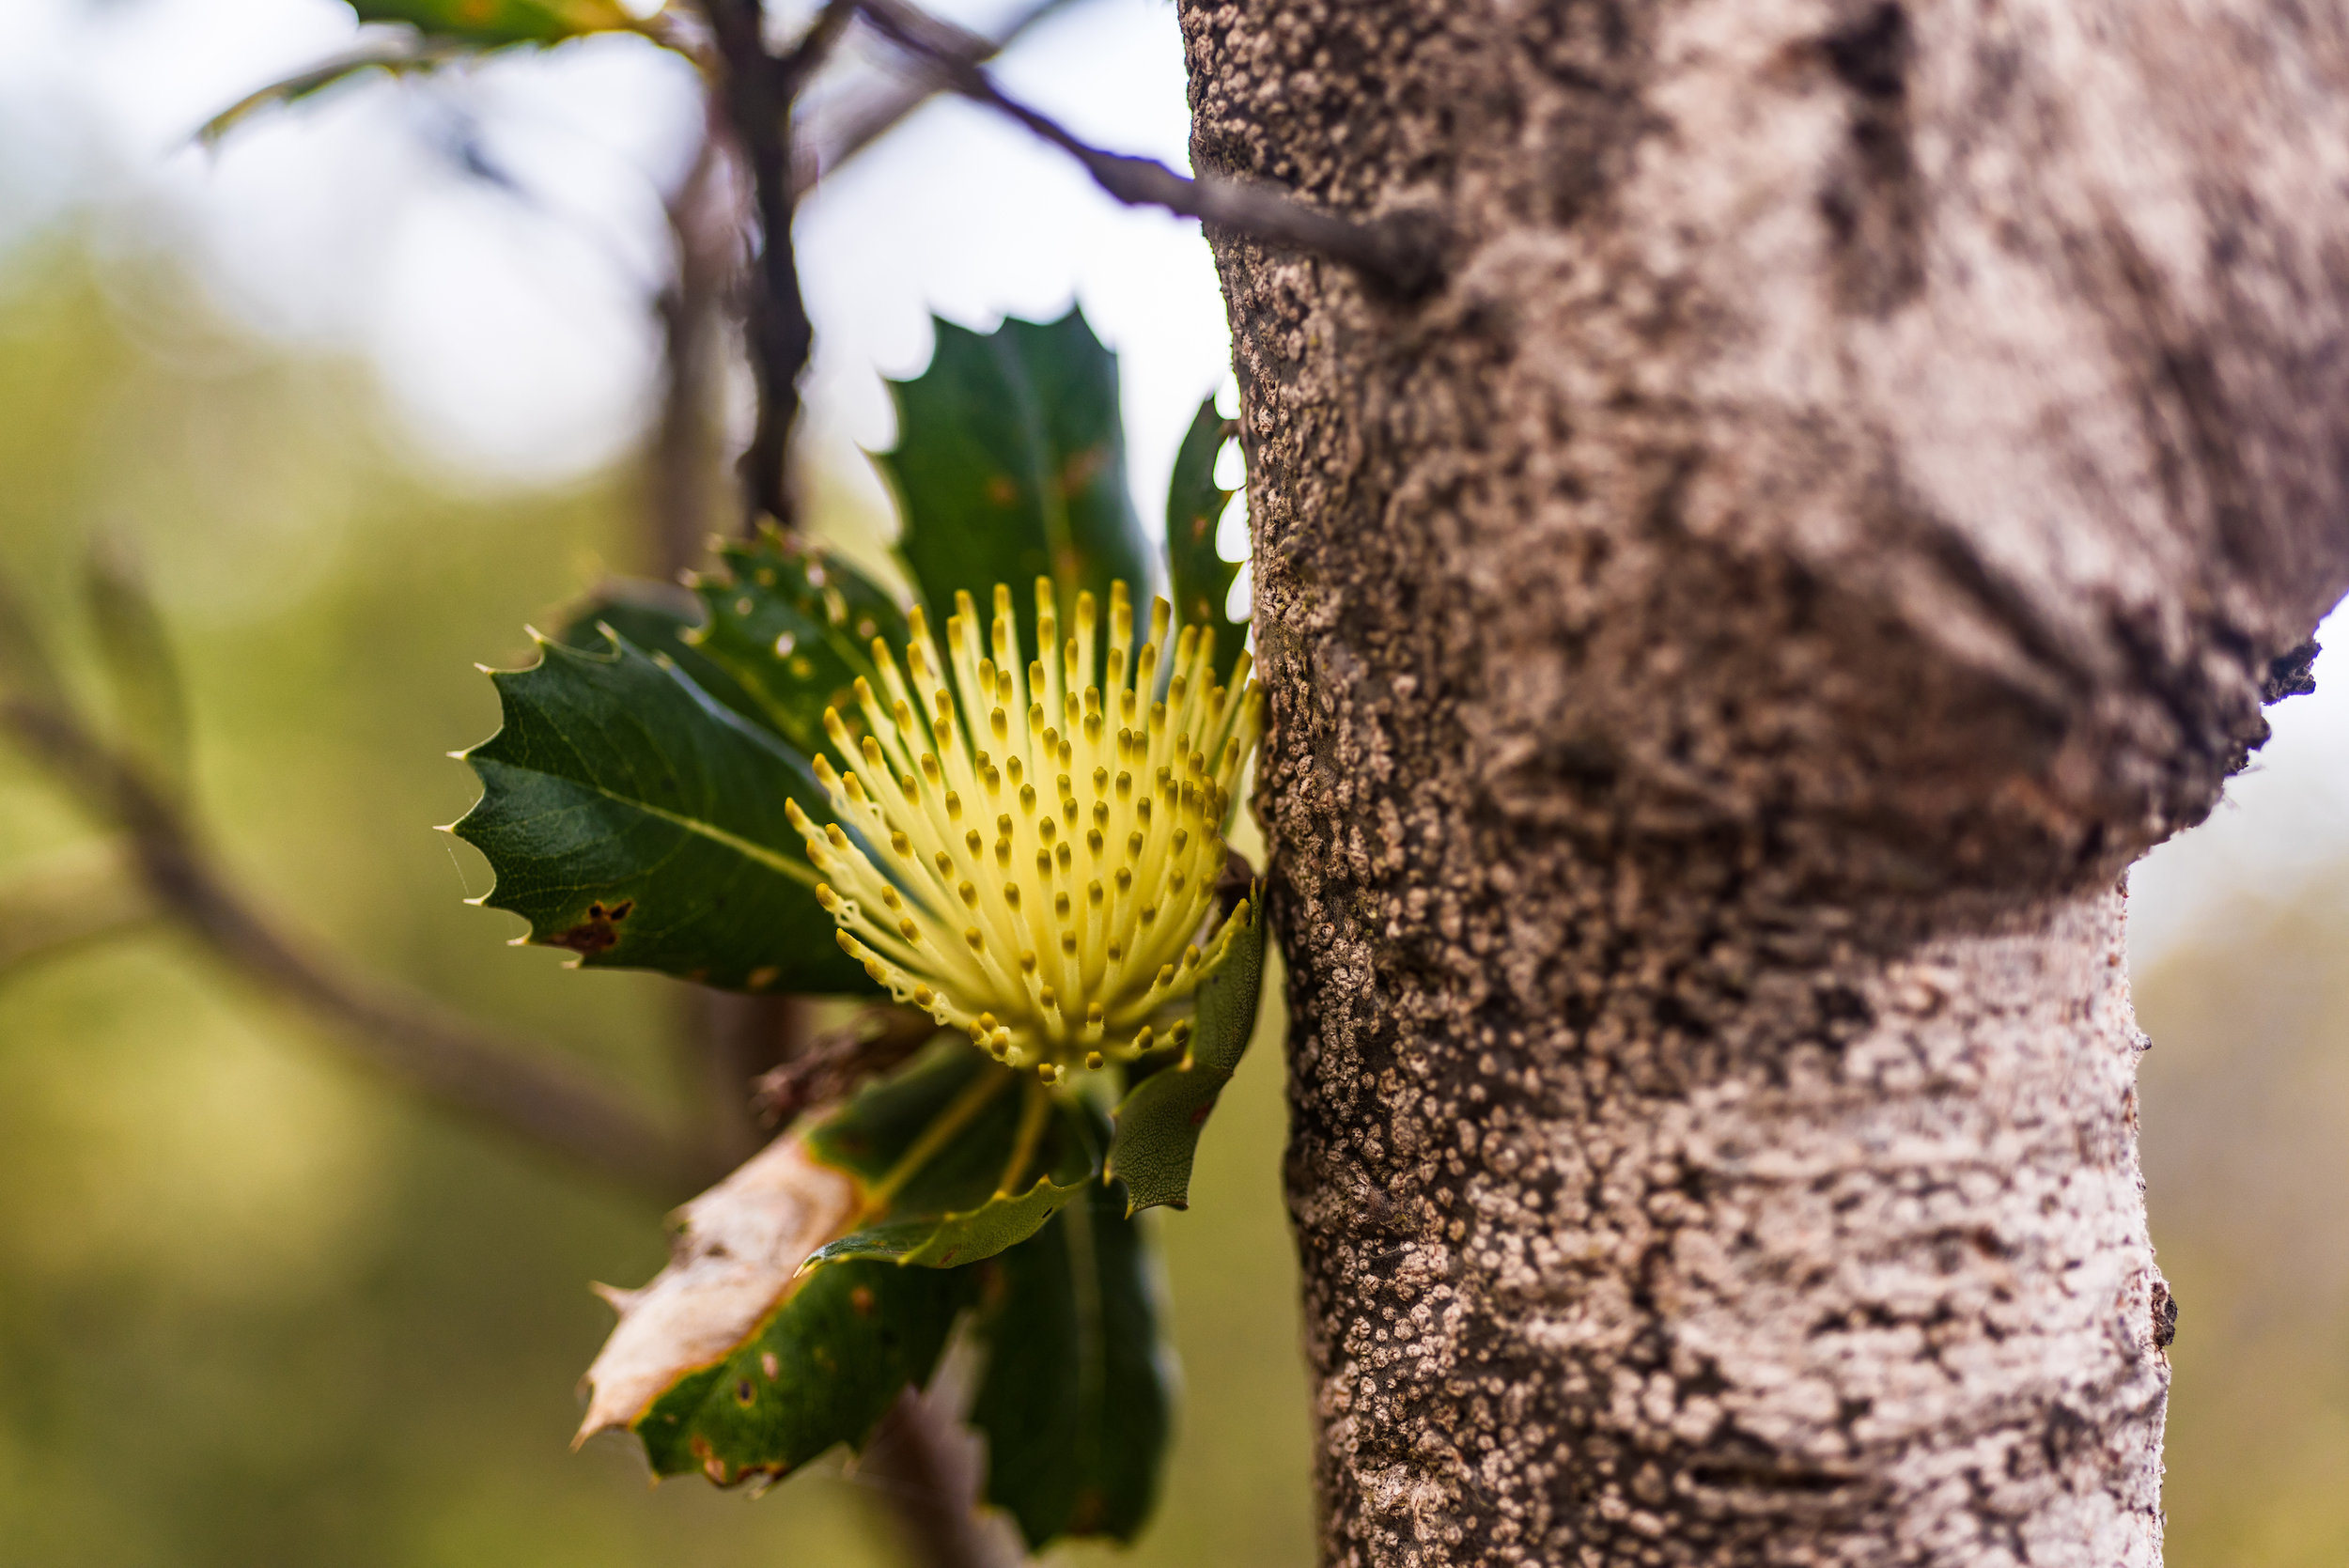 Pudjak…Banksia sessilis or parrot bush, abundant species in the southwest of Western Australia